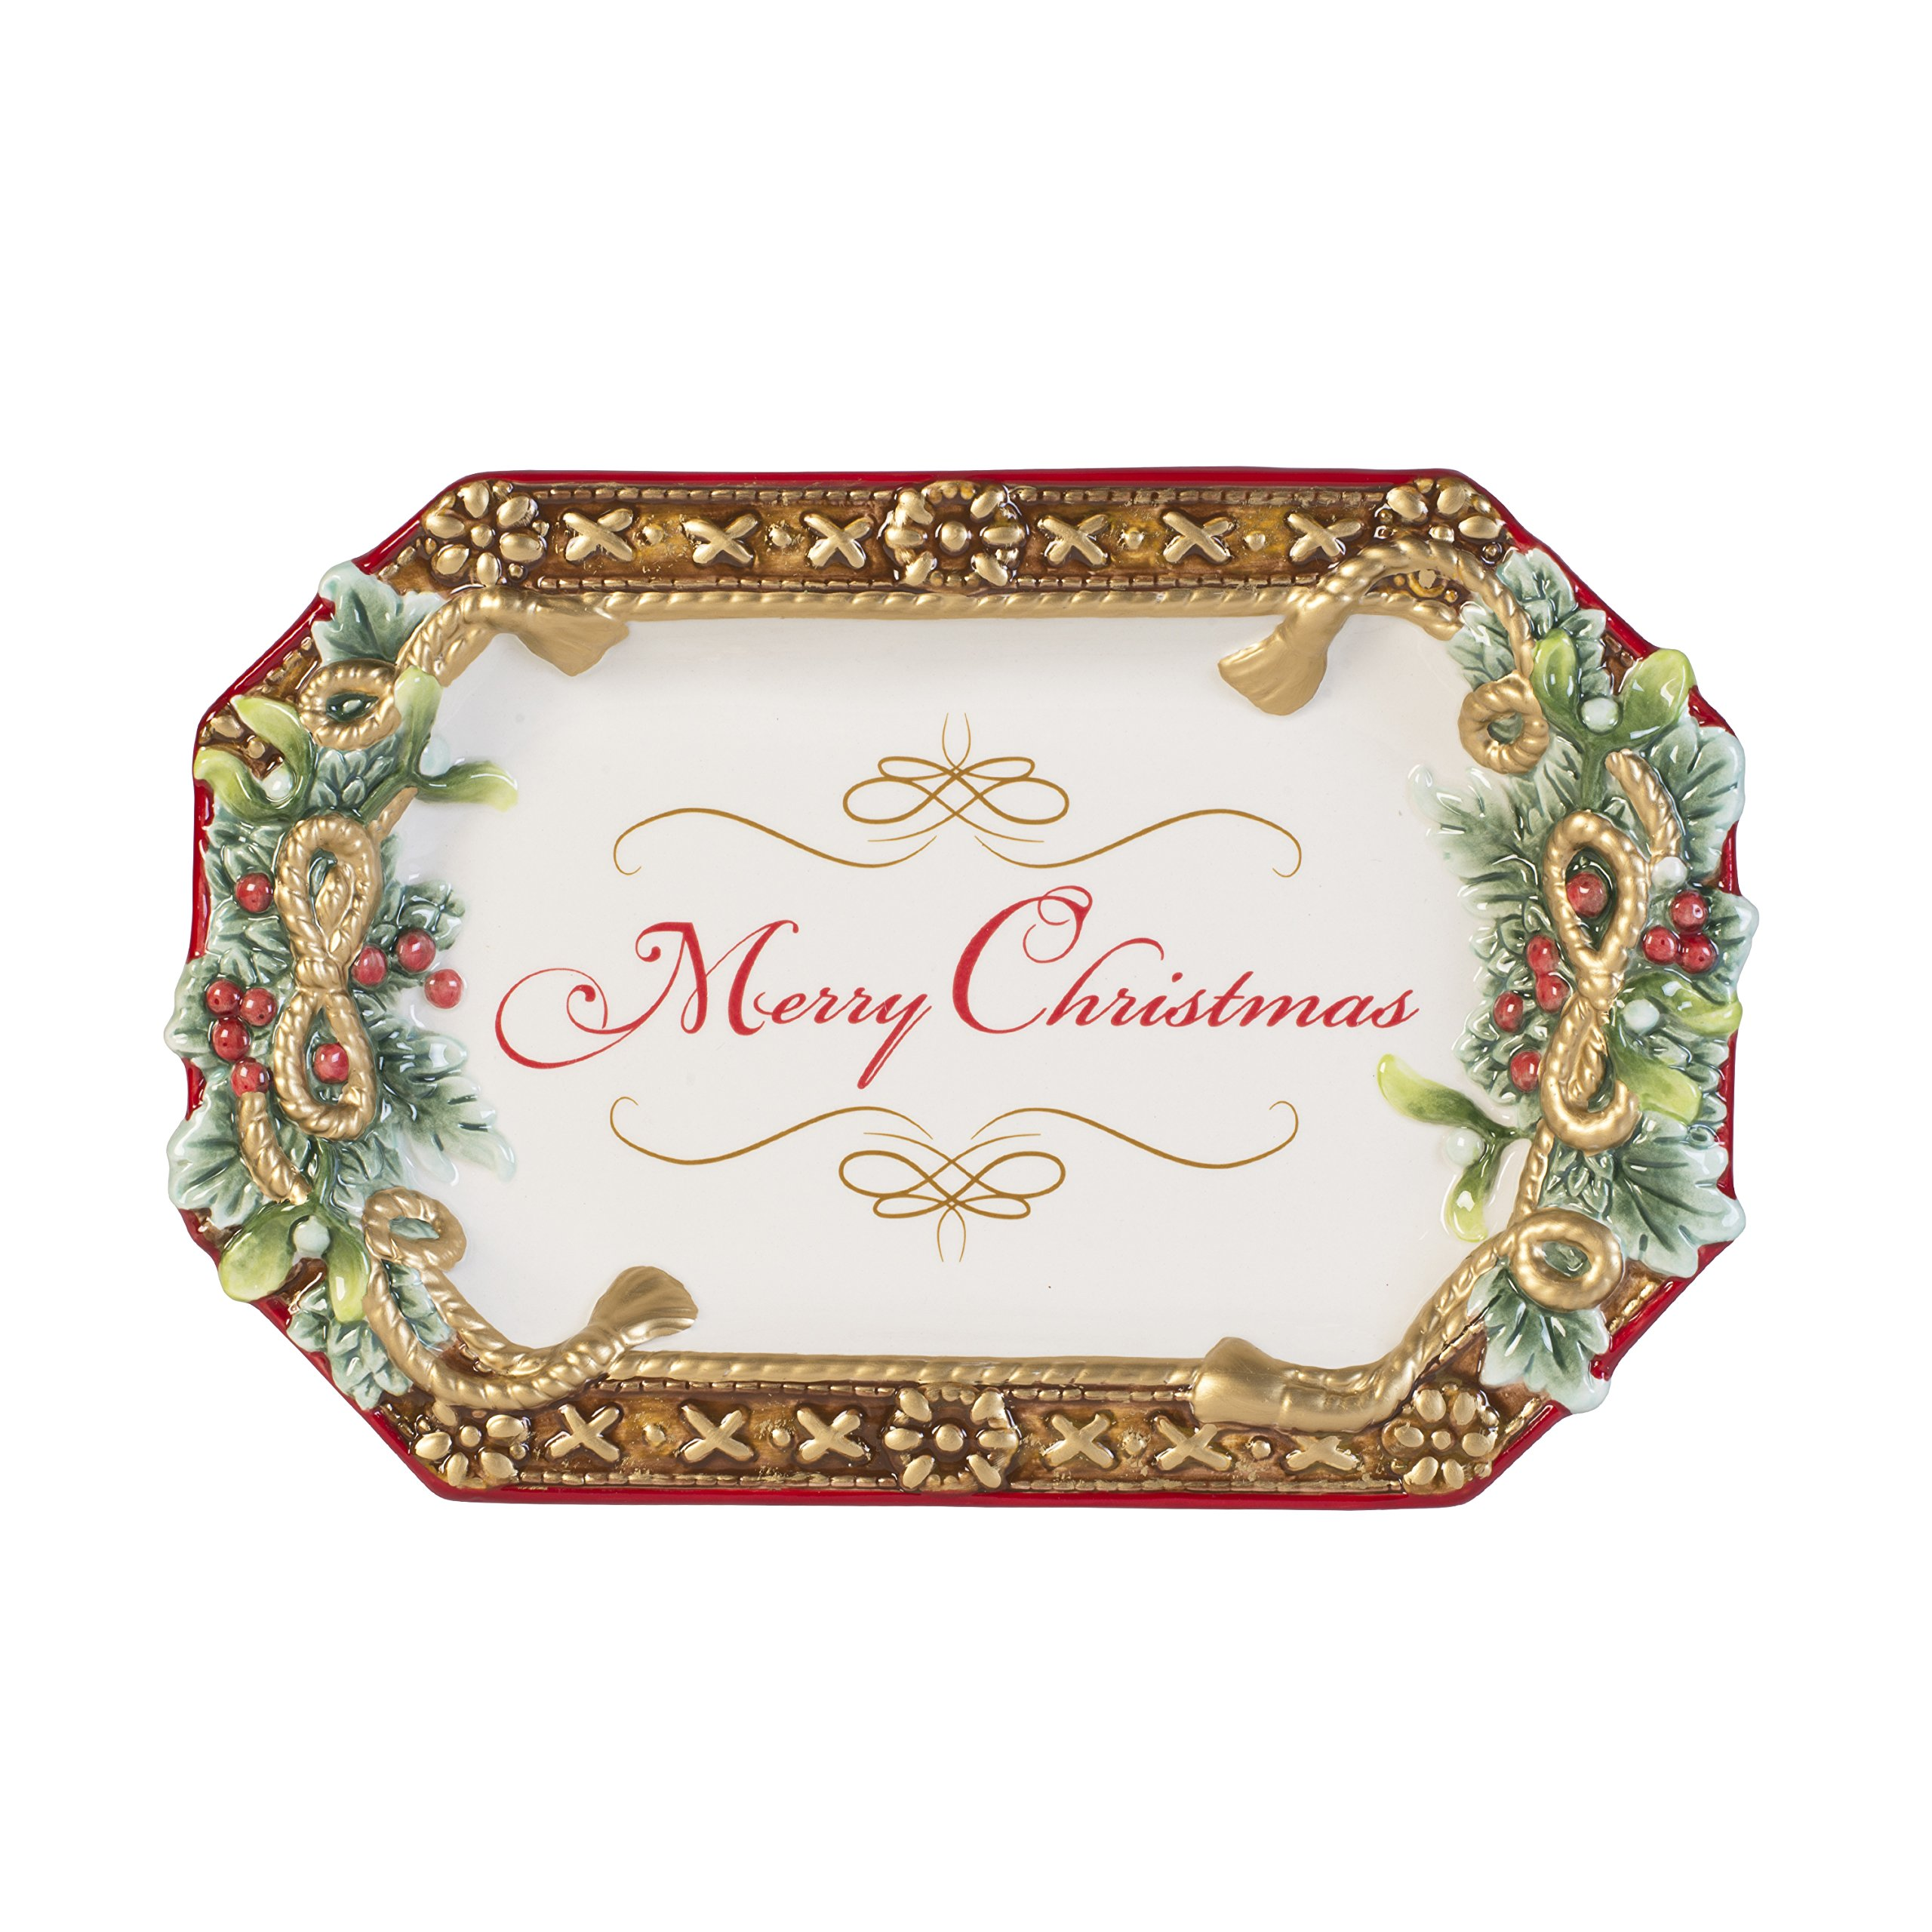 Fitz and Floyd 49-526 Yuletide Holiday Merry Christmas' Appetizer Serving Tray, Red